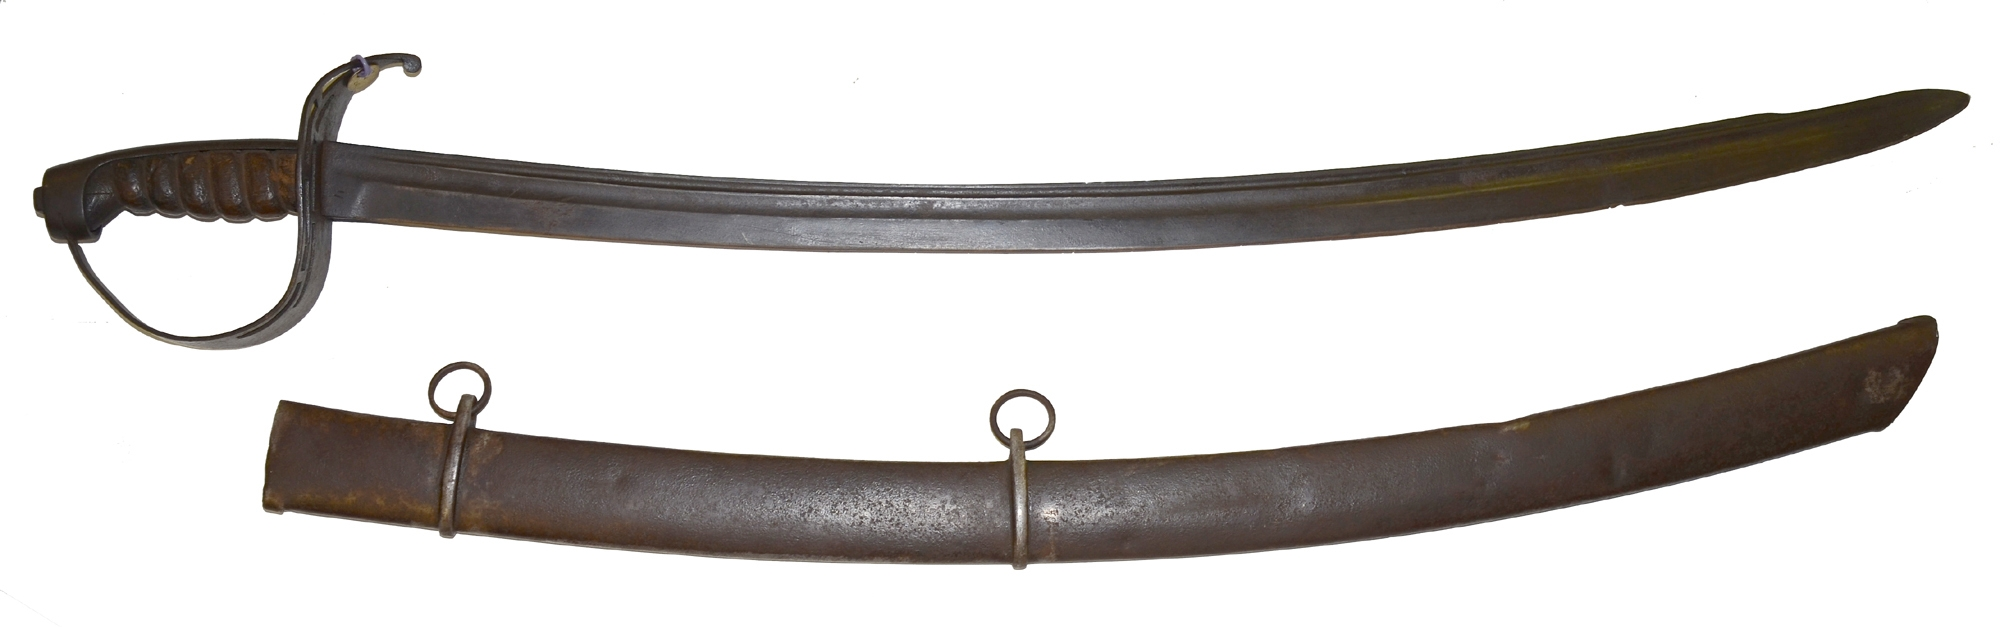 FIRST MODEL VIRGINIA MANUFACTORY CAVALRY SWORD WITH SCABBARD